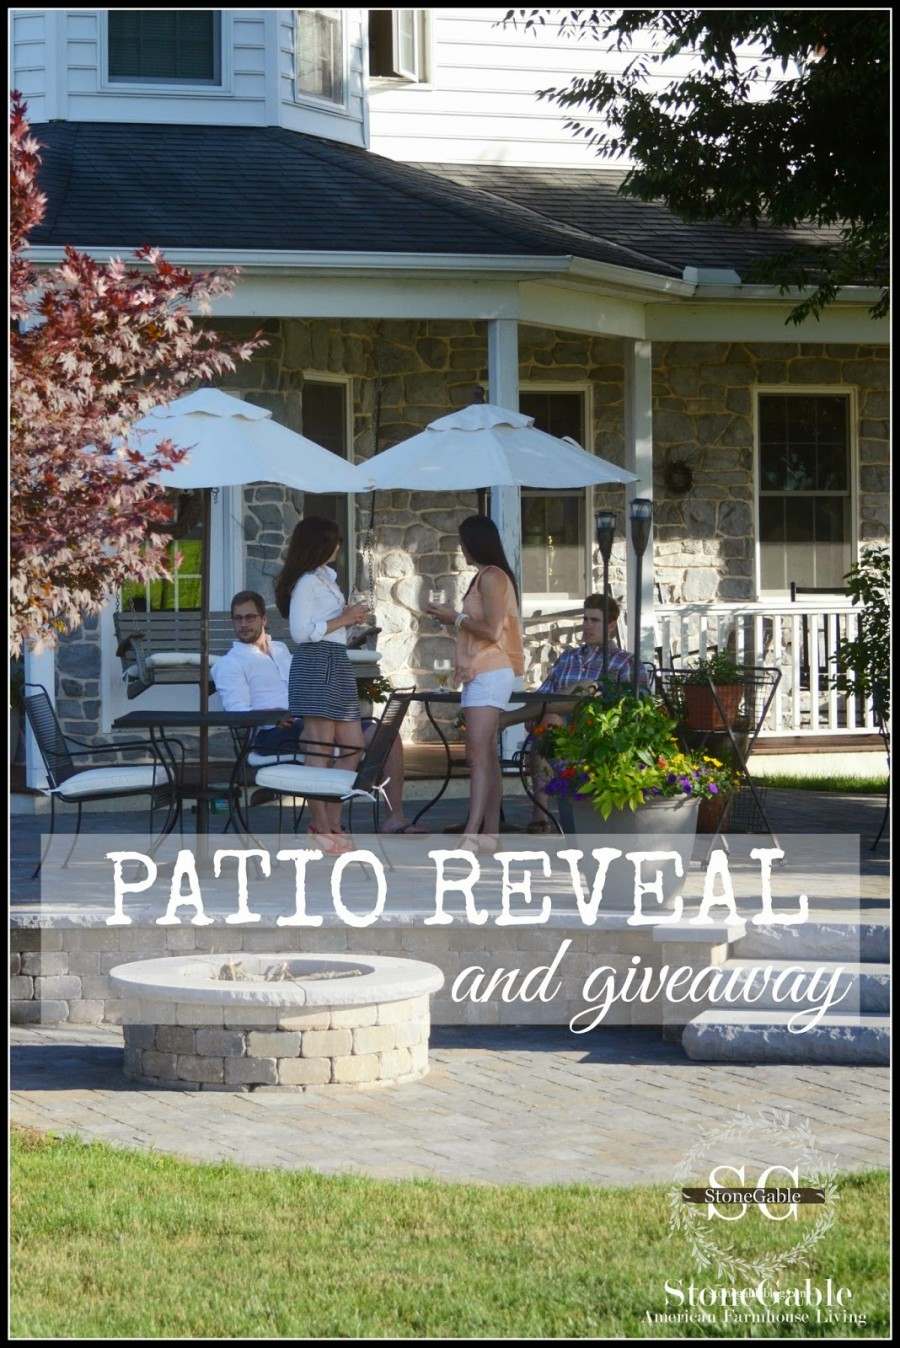 PATIO REVEAL AND GIVEAWAY